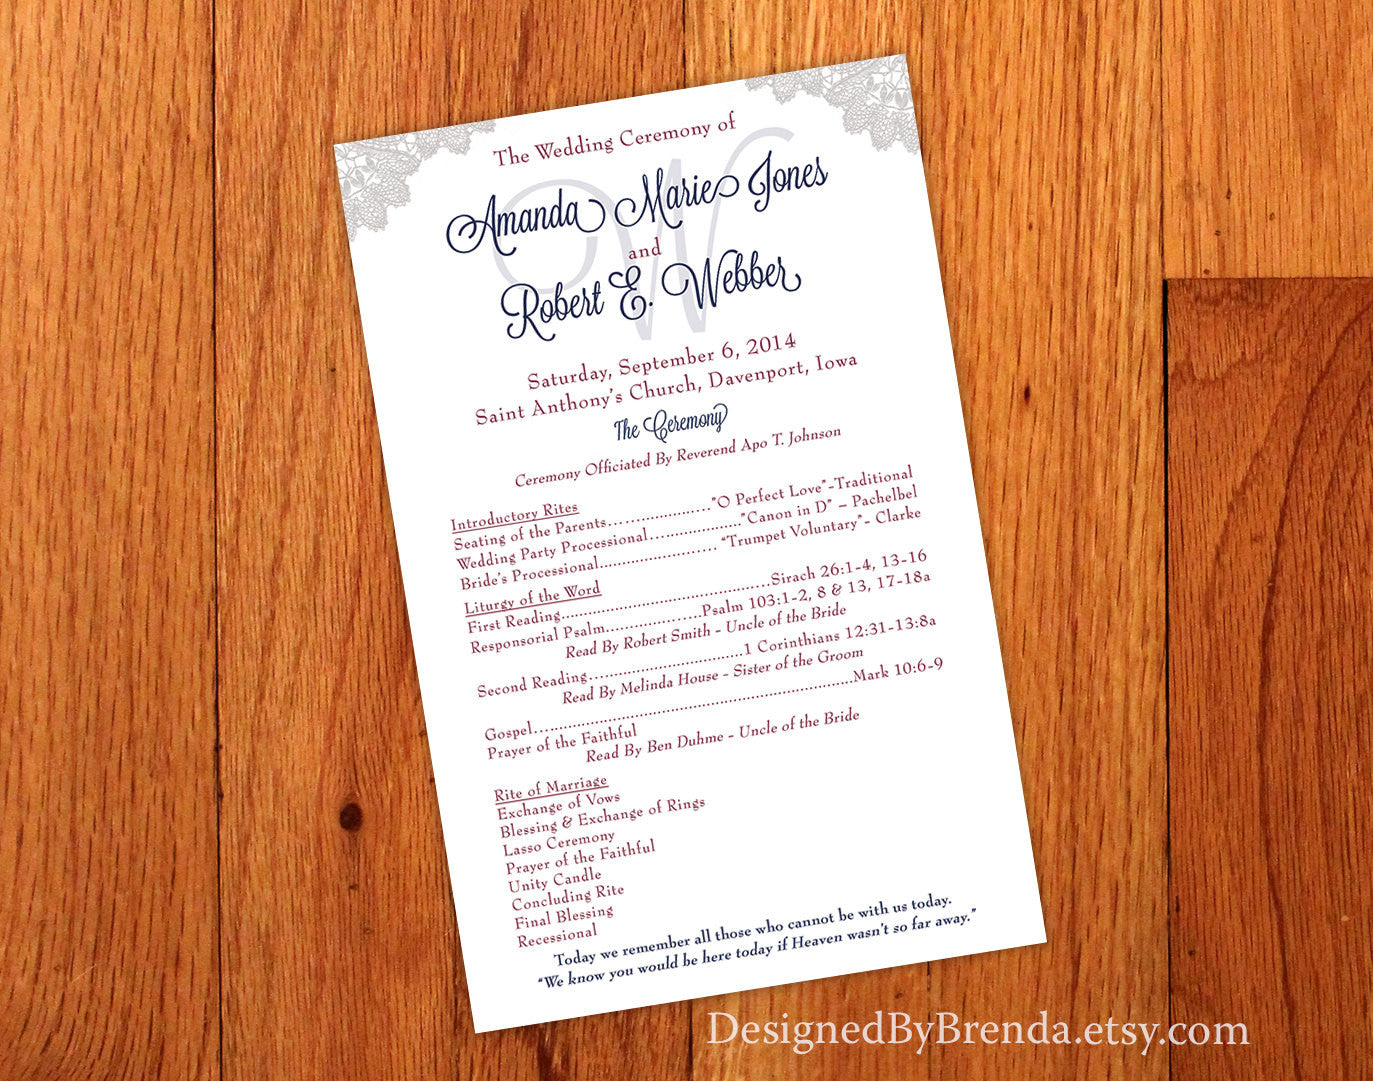 Large Double Sided Programs - Vintage Lace - Navy Blue & Raspberry Pink